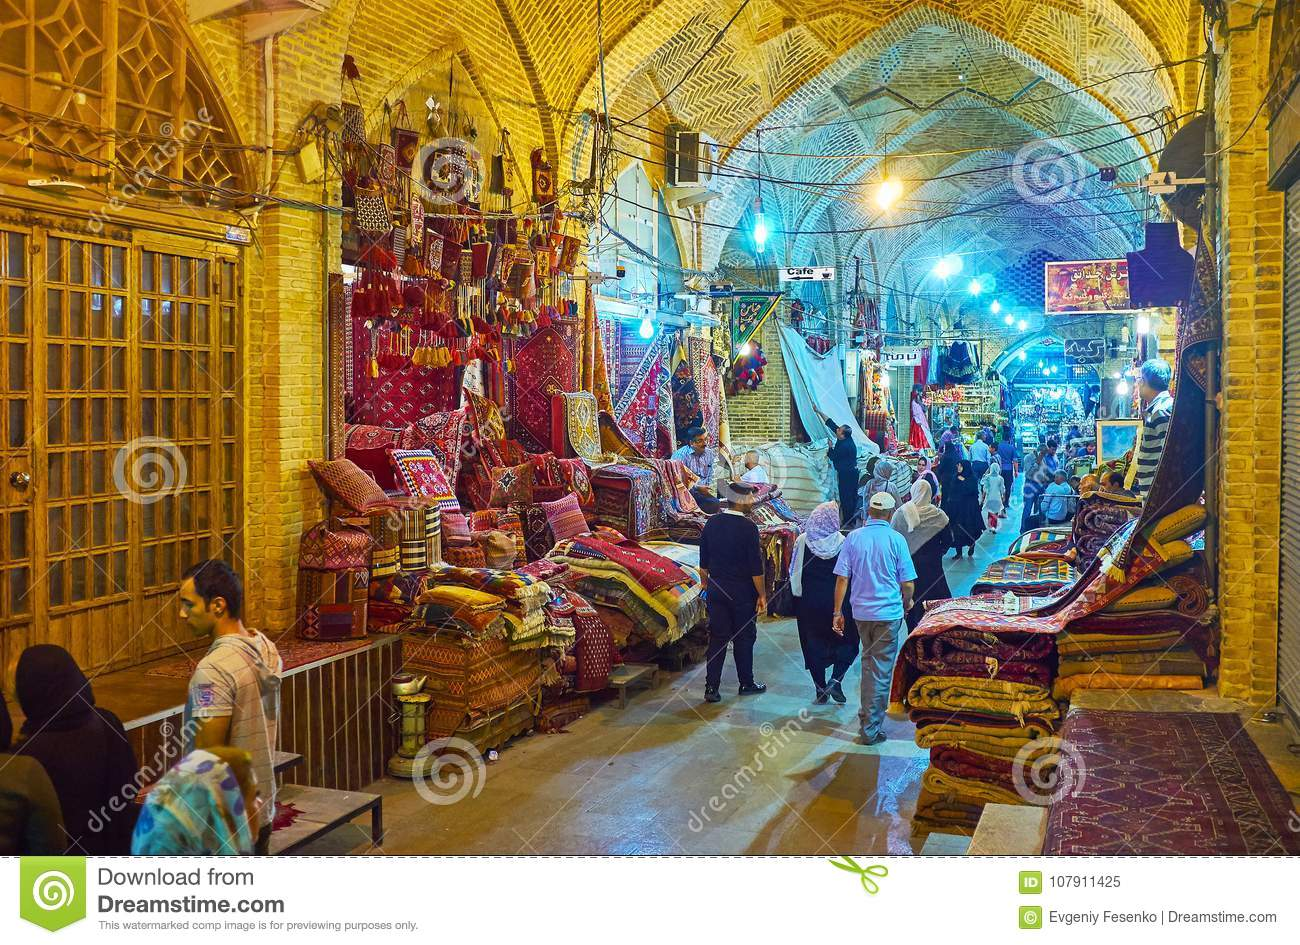 Shiraz iran october 12 2017 the unique atmosphere of traditional eastern market vakil bazaar with carpet stores authentic goods and local vendors